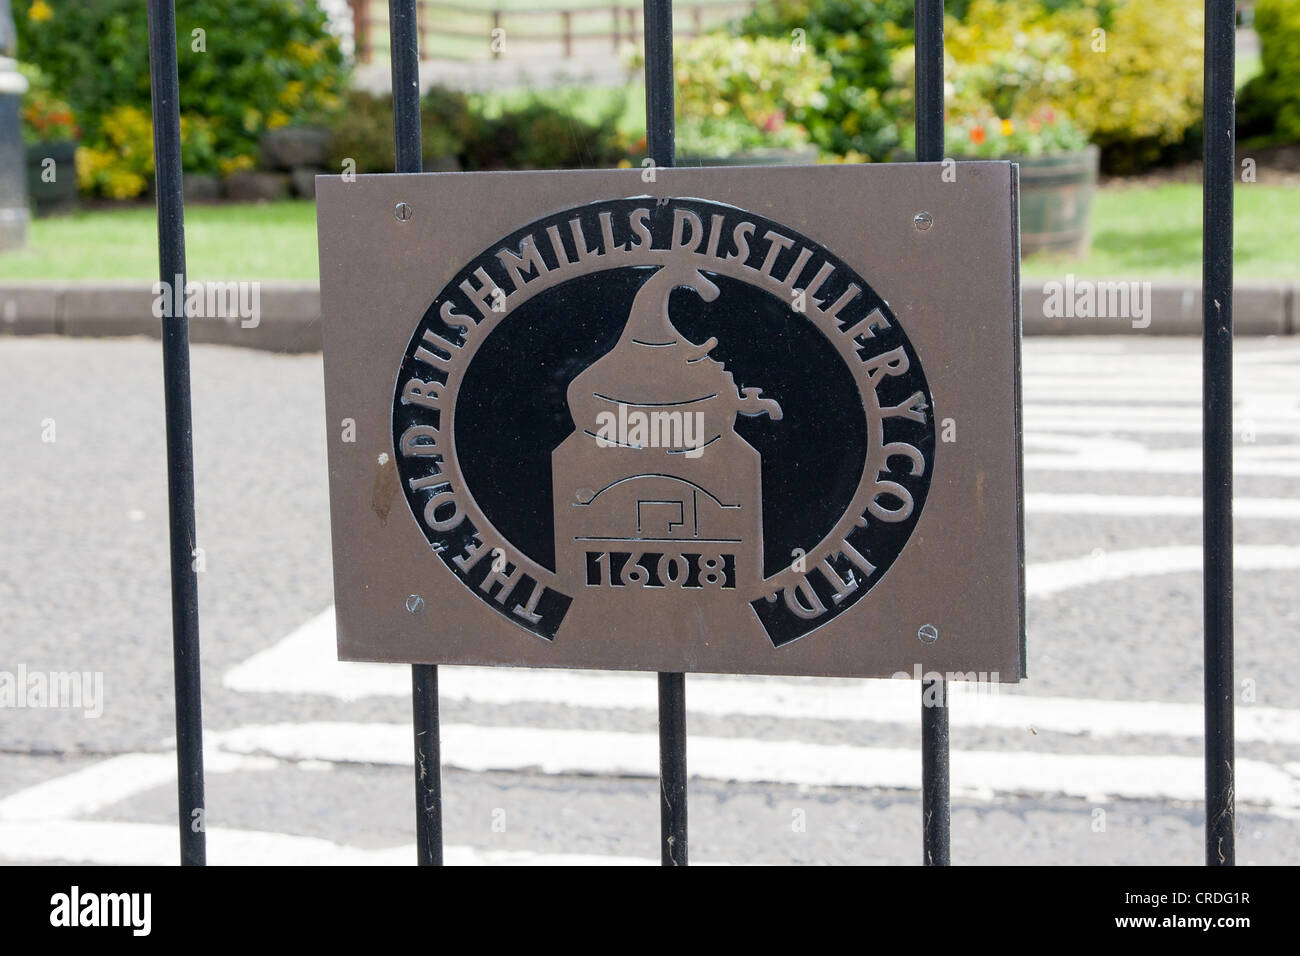 Bushmills distilery sign - Stock Image